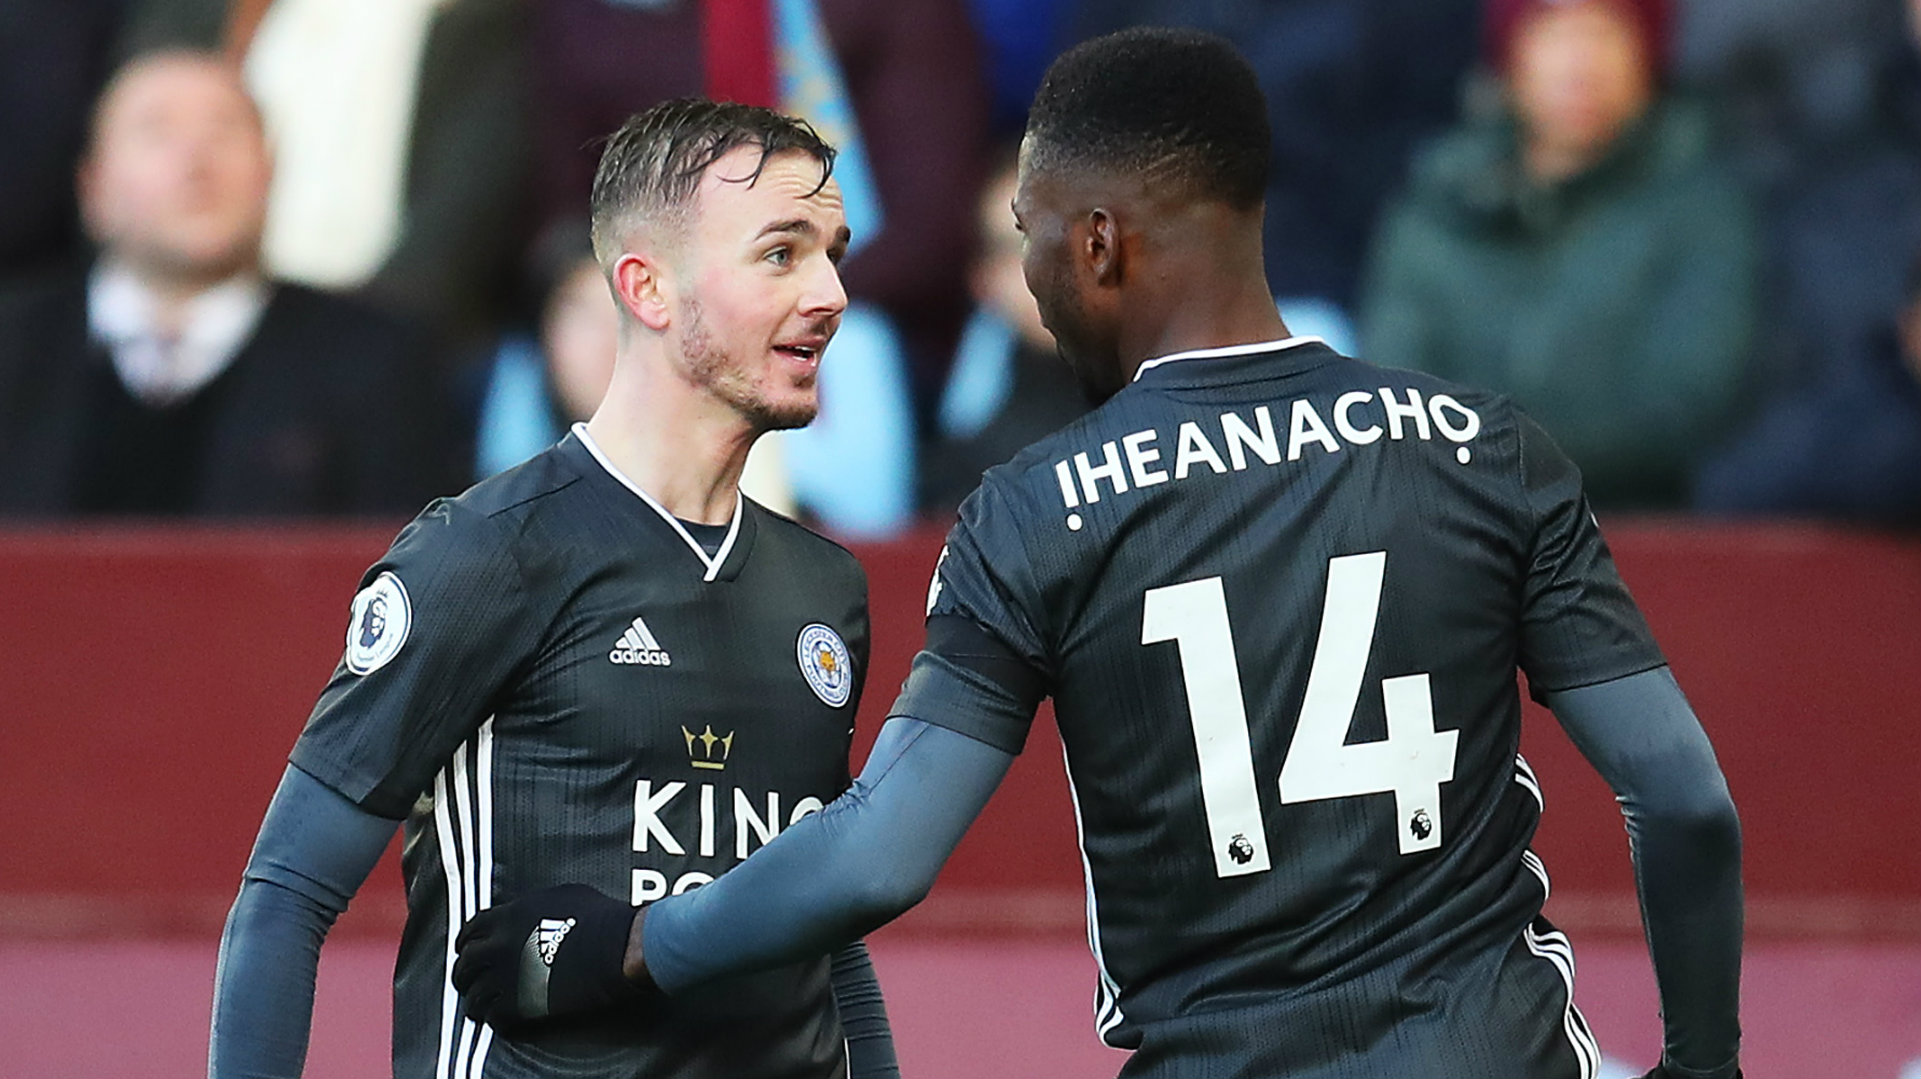 Iheanacho resurgence opens up new possibilities for Leicester in title race